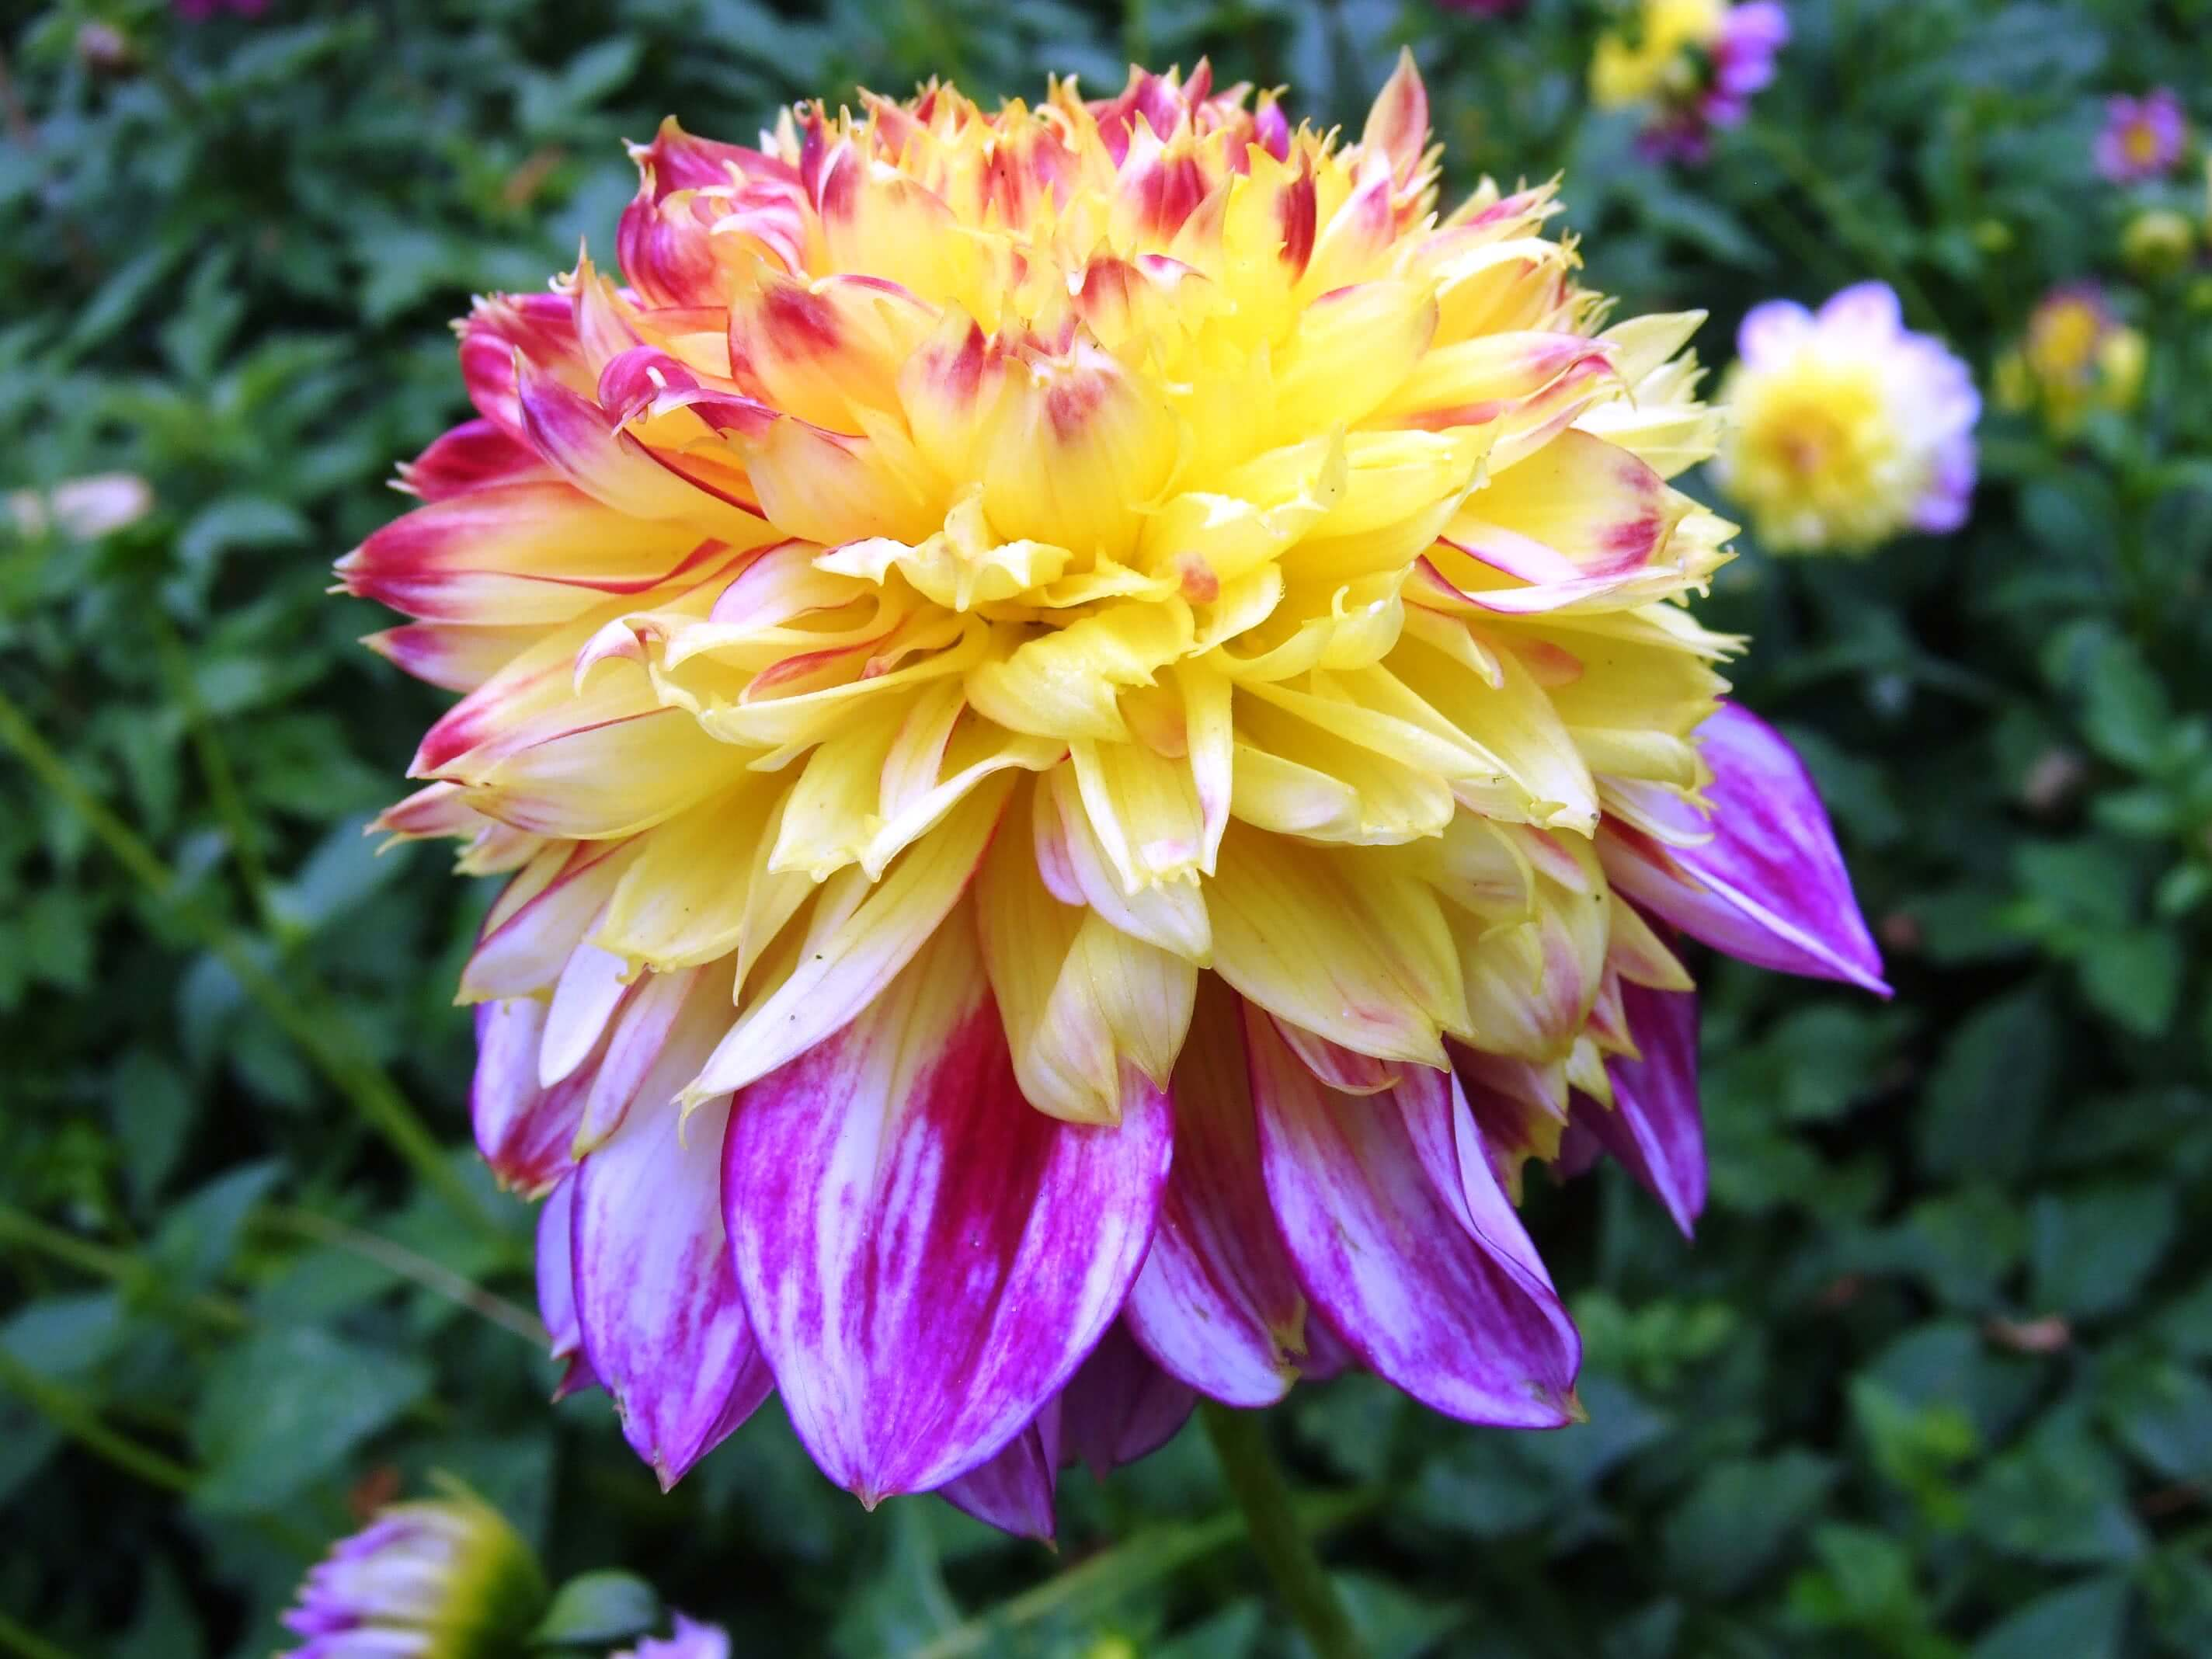 10 Varieties Of Dahlia Flowers Types Of Dahlias Dahlia Varieties